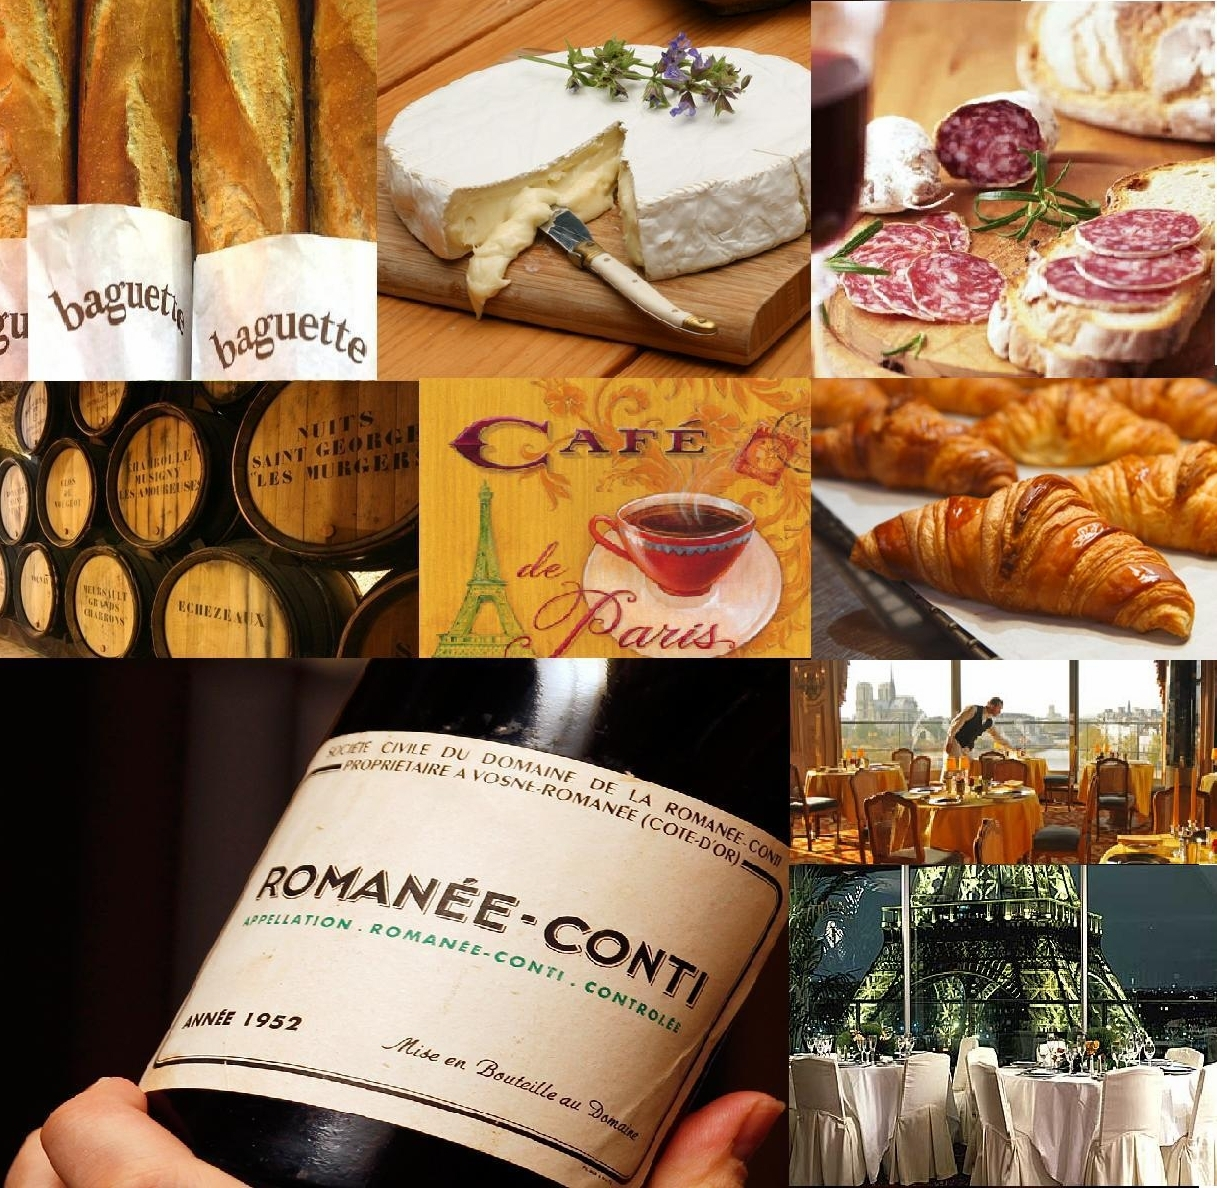 Paris GOODfood+wine  The first ever long form radio show broadcast from Paris in English about French food and wine.  Find us at World Radio Paris. Fund us at Beacon Reader.